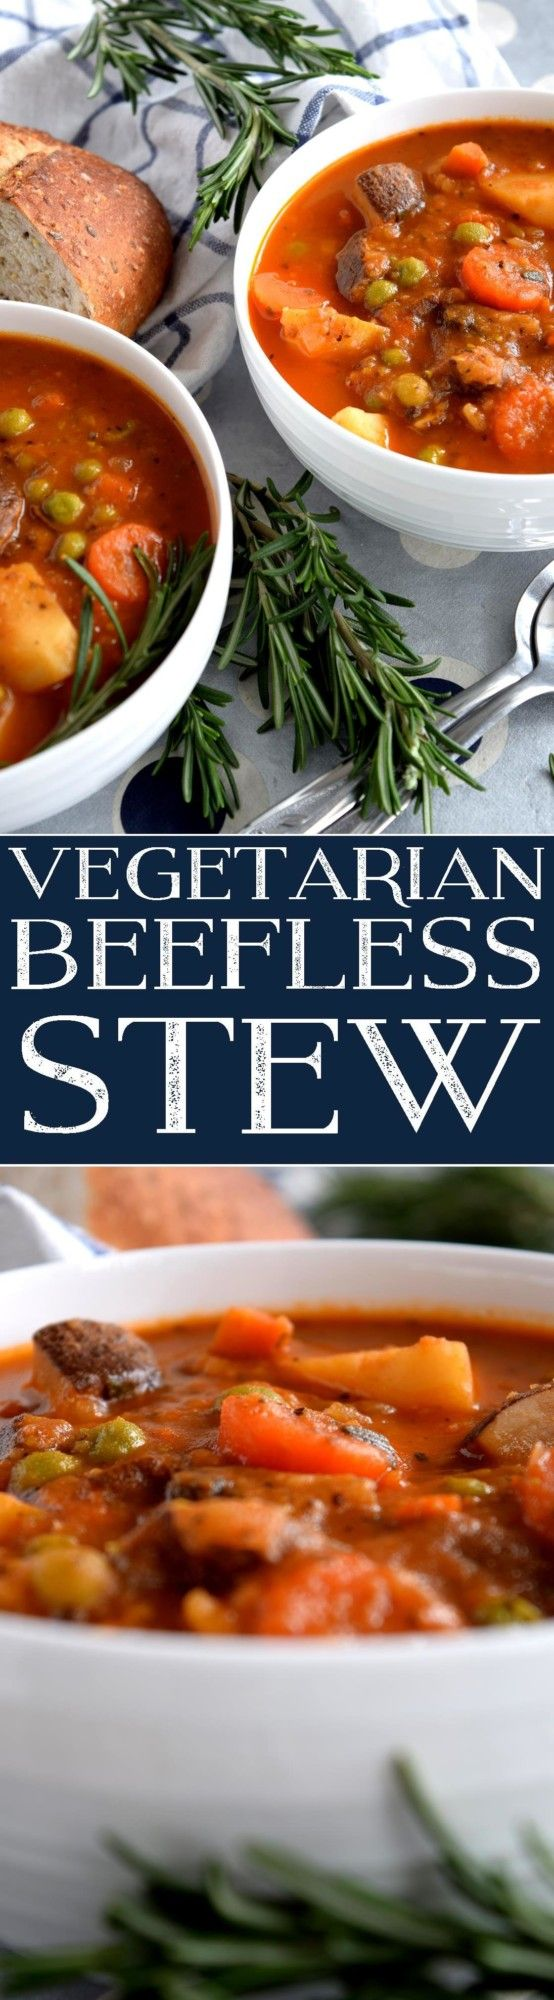 Vegetarians rejoice! A hearty beef stew is no longer off limits to you with this Vegetarian Beefless Stew! By substituting the beef with chunky, sauteed portabella mushrooms, the recipe maintains its meatiness and texture. Together, with root vegetables, fresh herbs,…